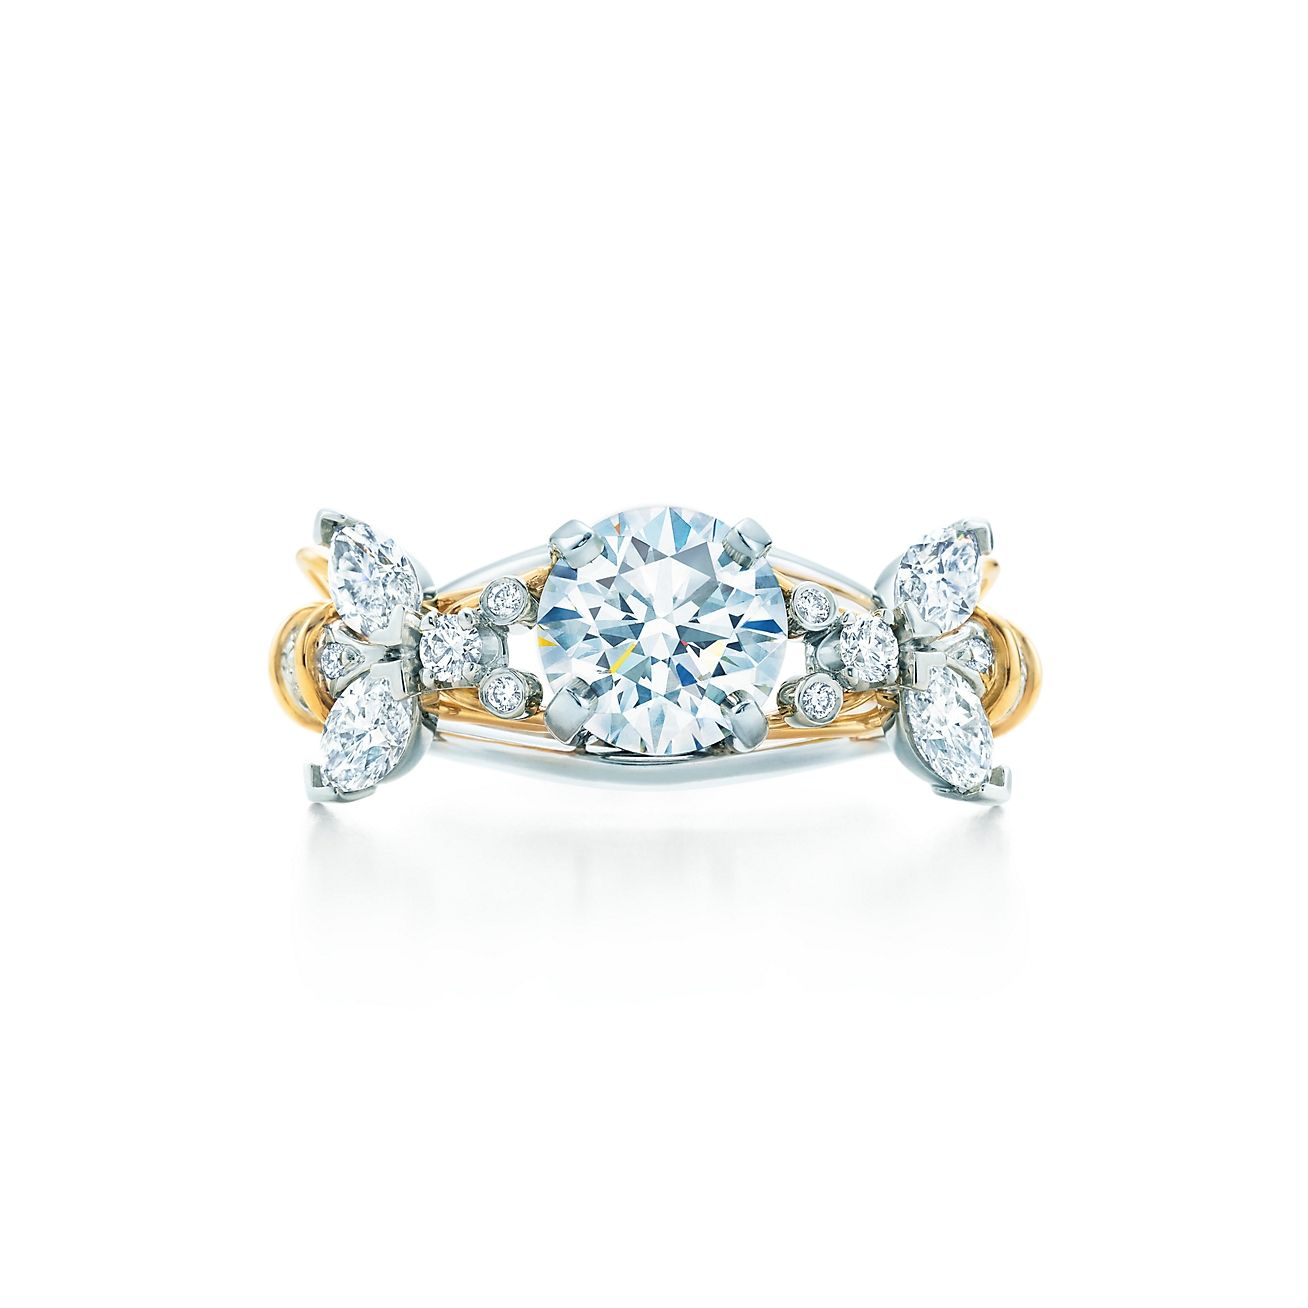 Schlumberger® Two Bees Engagement Ring in Platinum & 18k